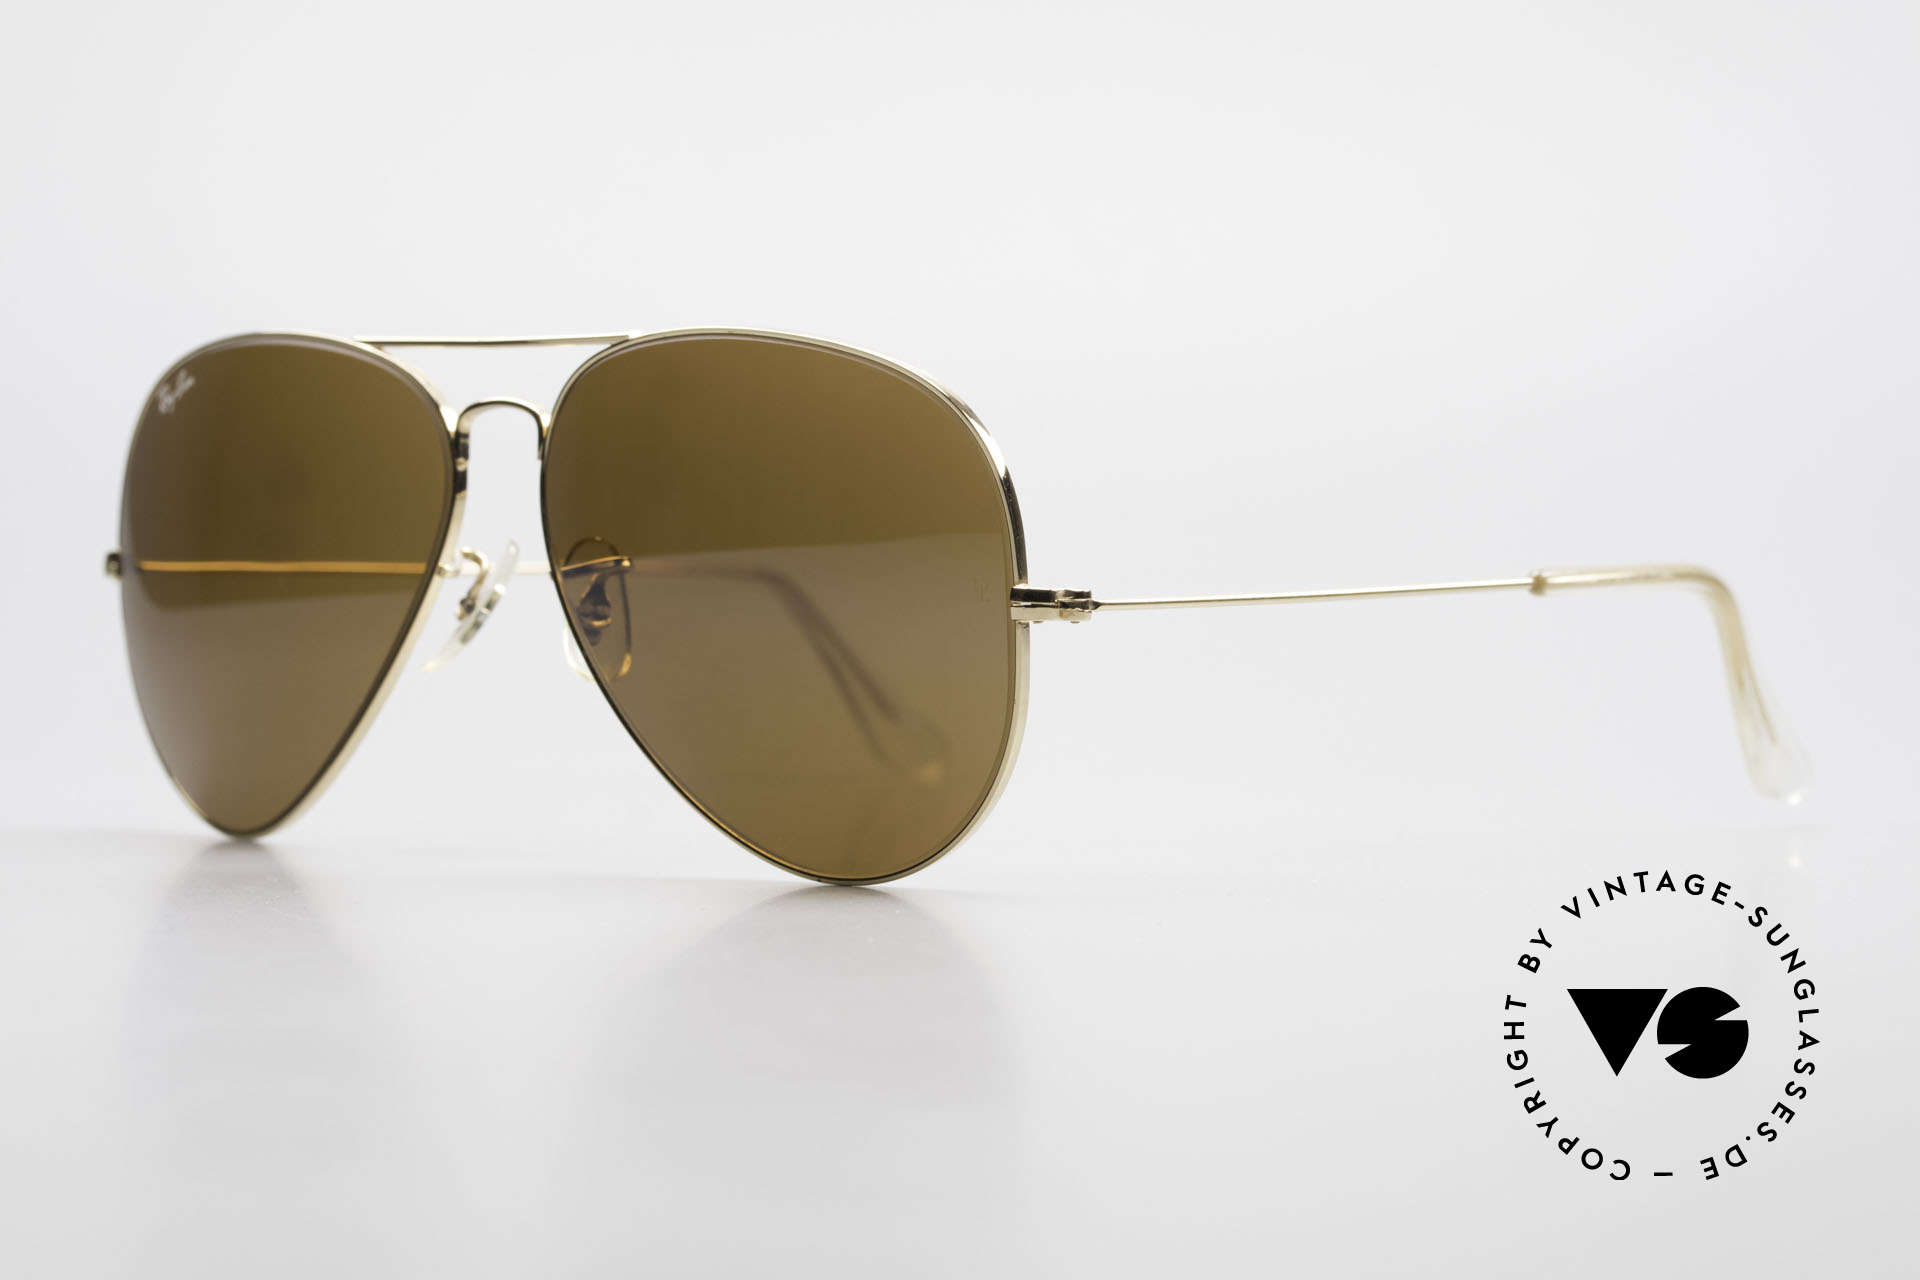 Ray Ban Large Metal II Old Ray-Ban B&L USA Shades, made in the 70's and 80's by Bausch&Lomb, U.S.A., Made for Men